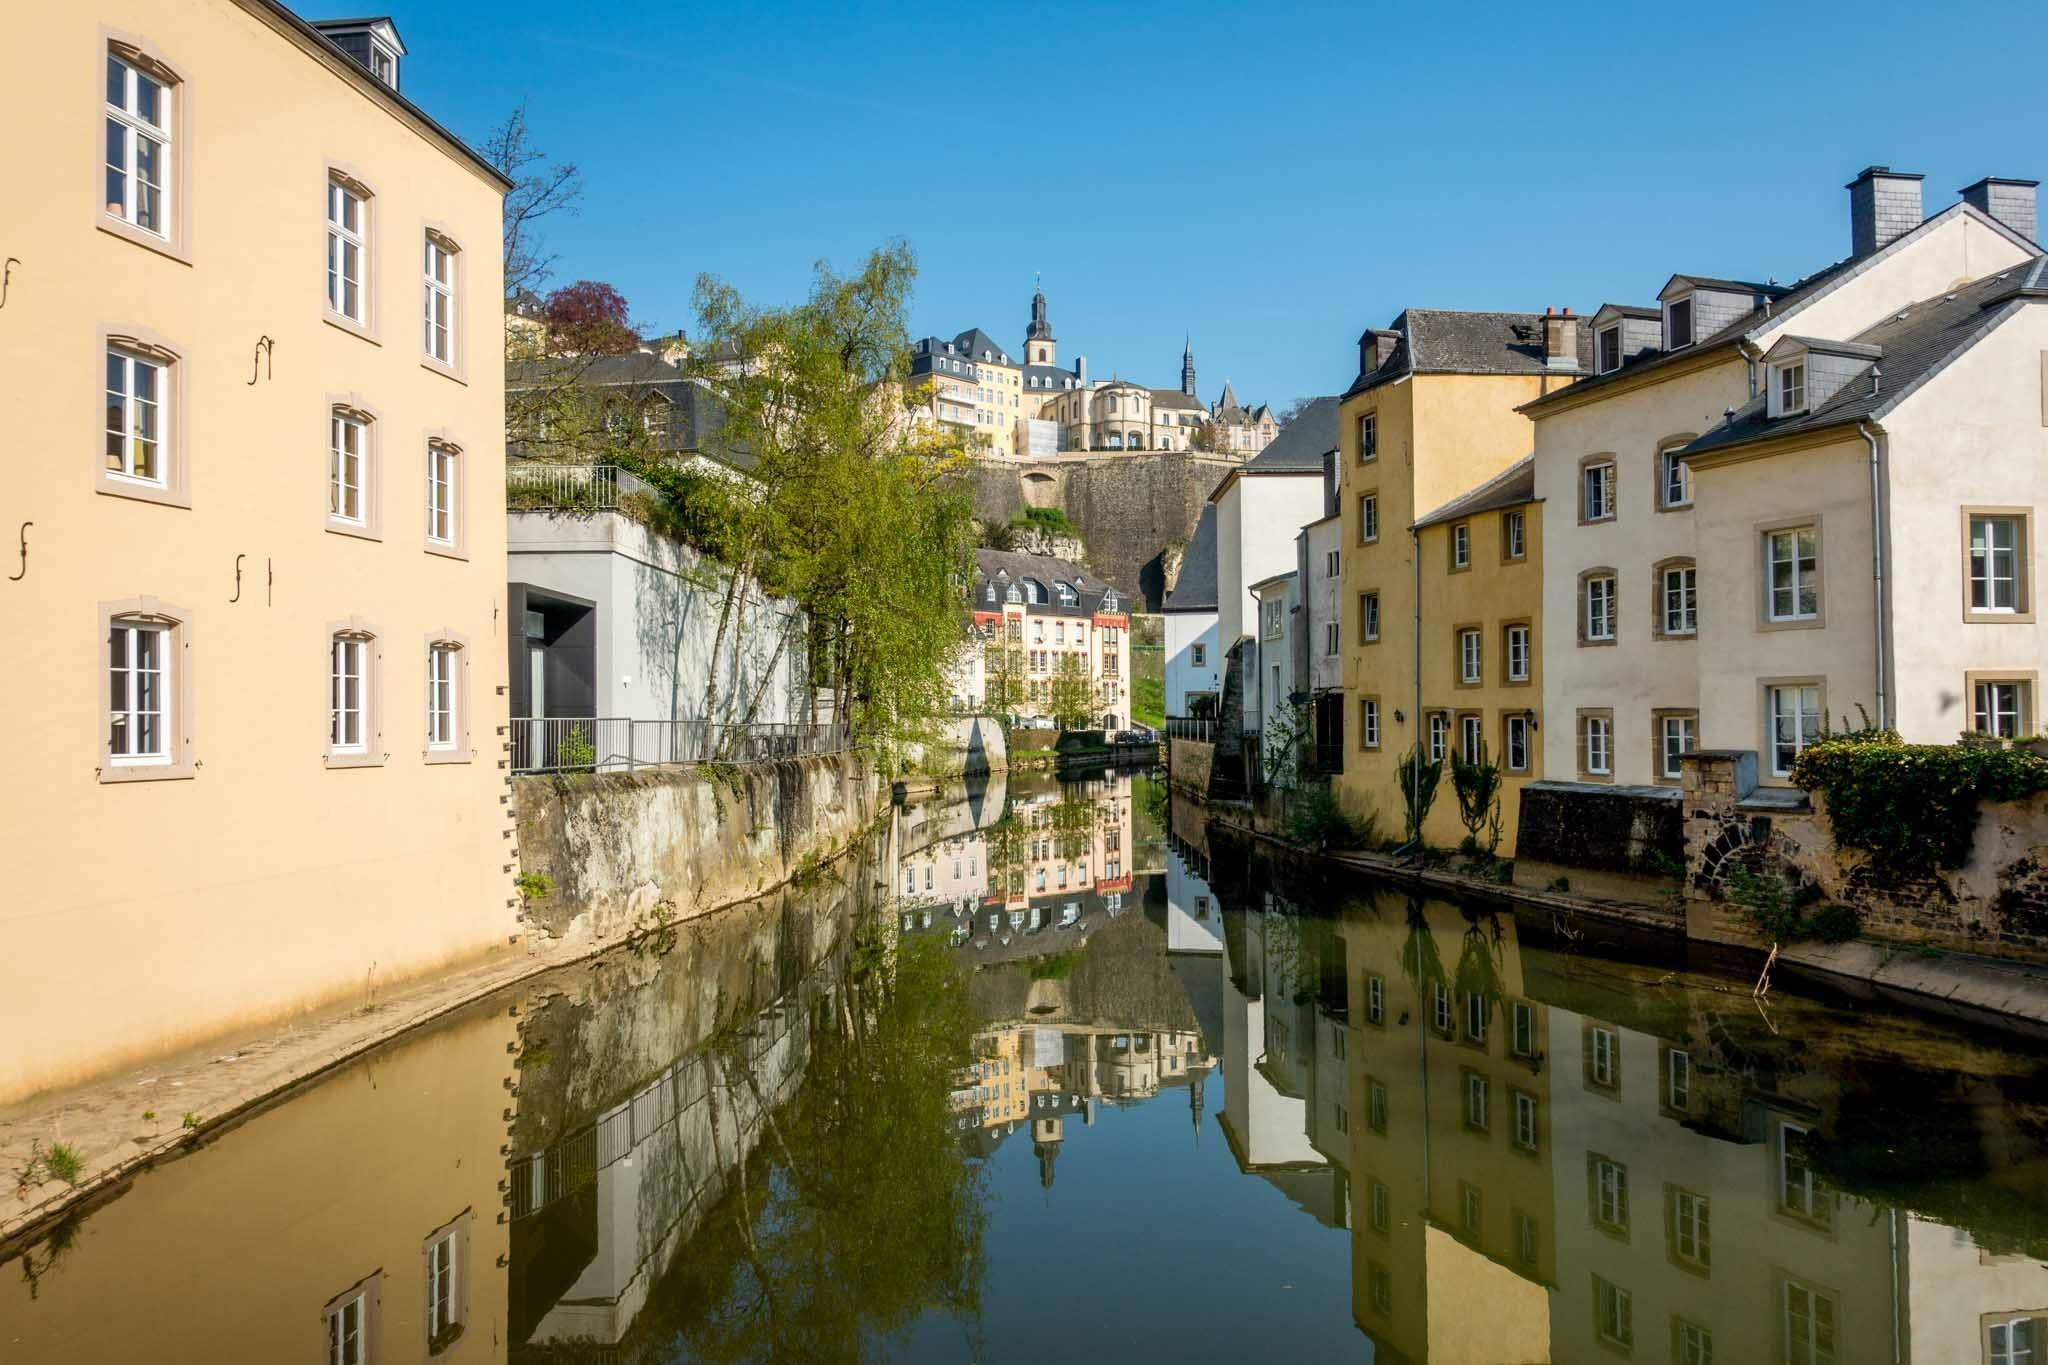 If you're wondering what to do in Luxembourg, visiting The Grund (the lower part of Luxembourg City) is a must